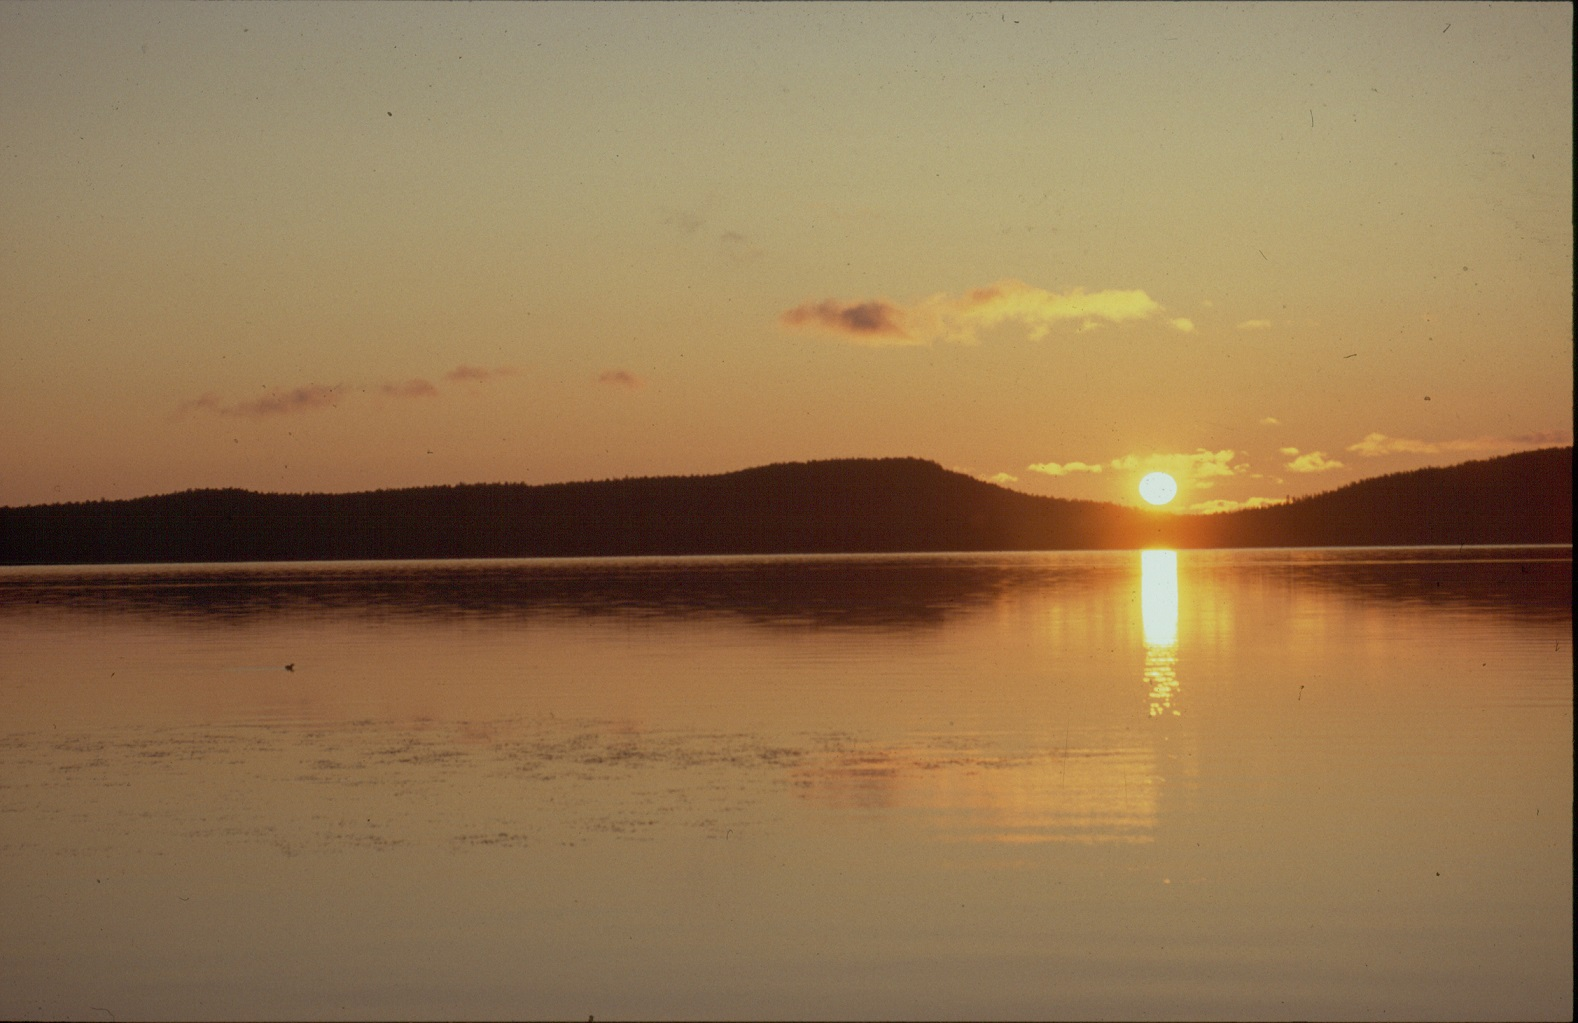 midnight sun lapland 2